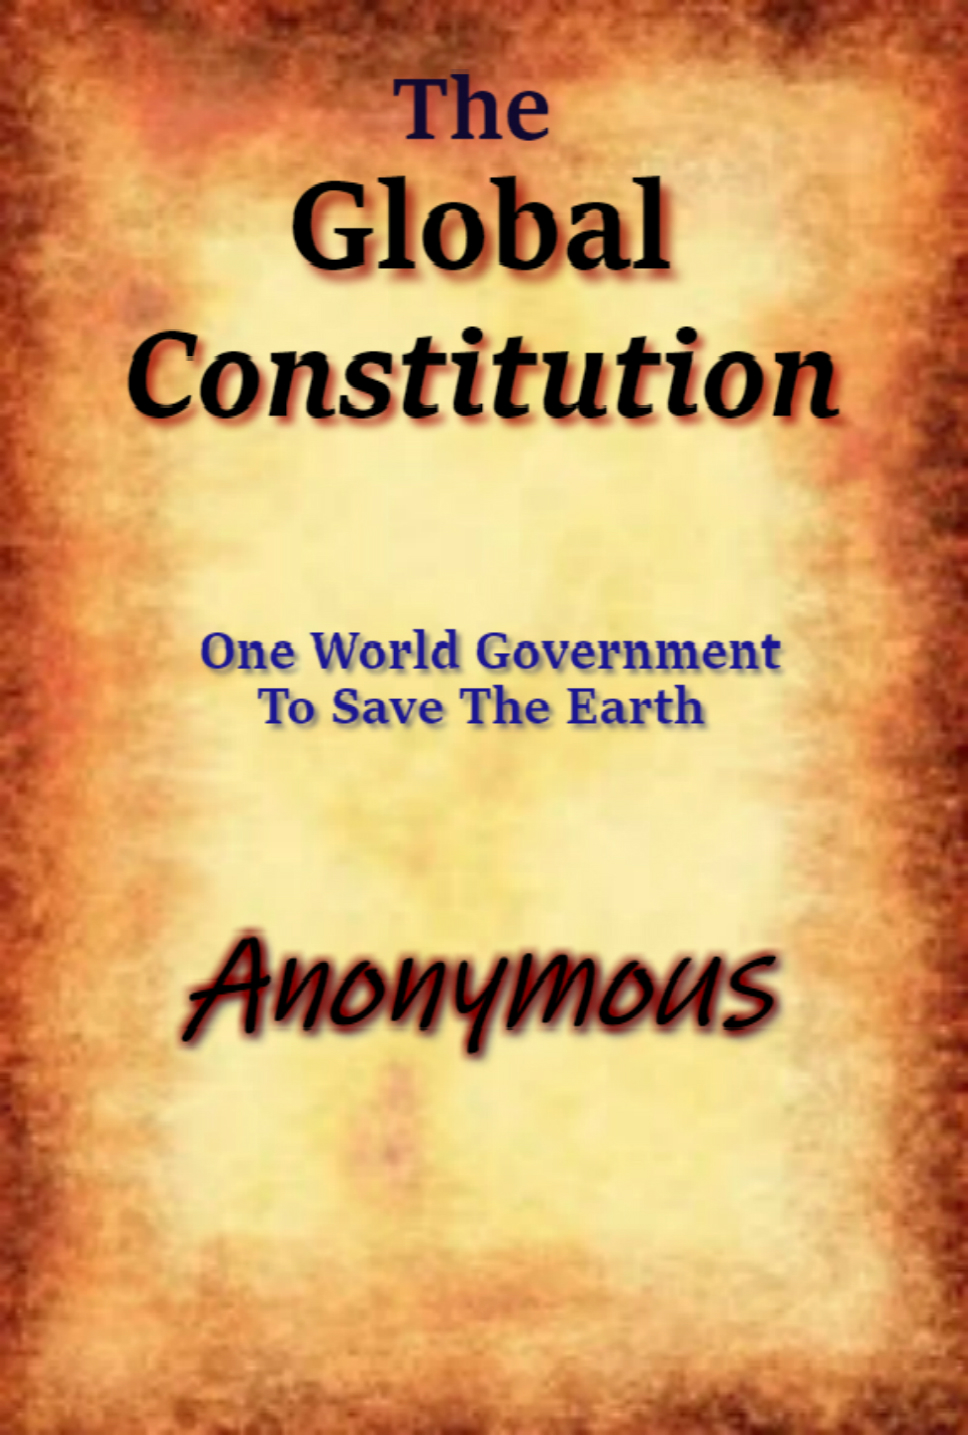 The Global Constitution